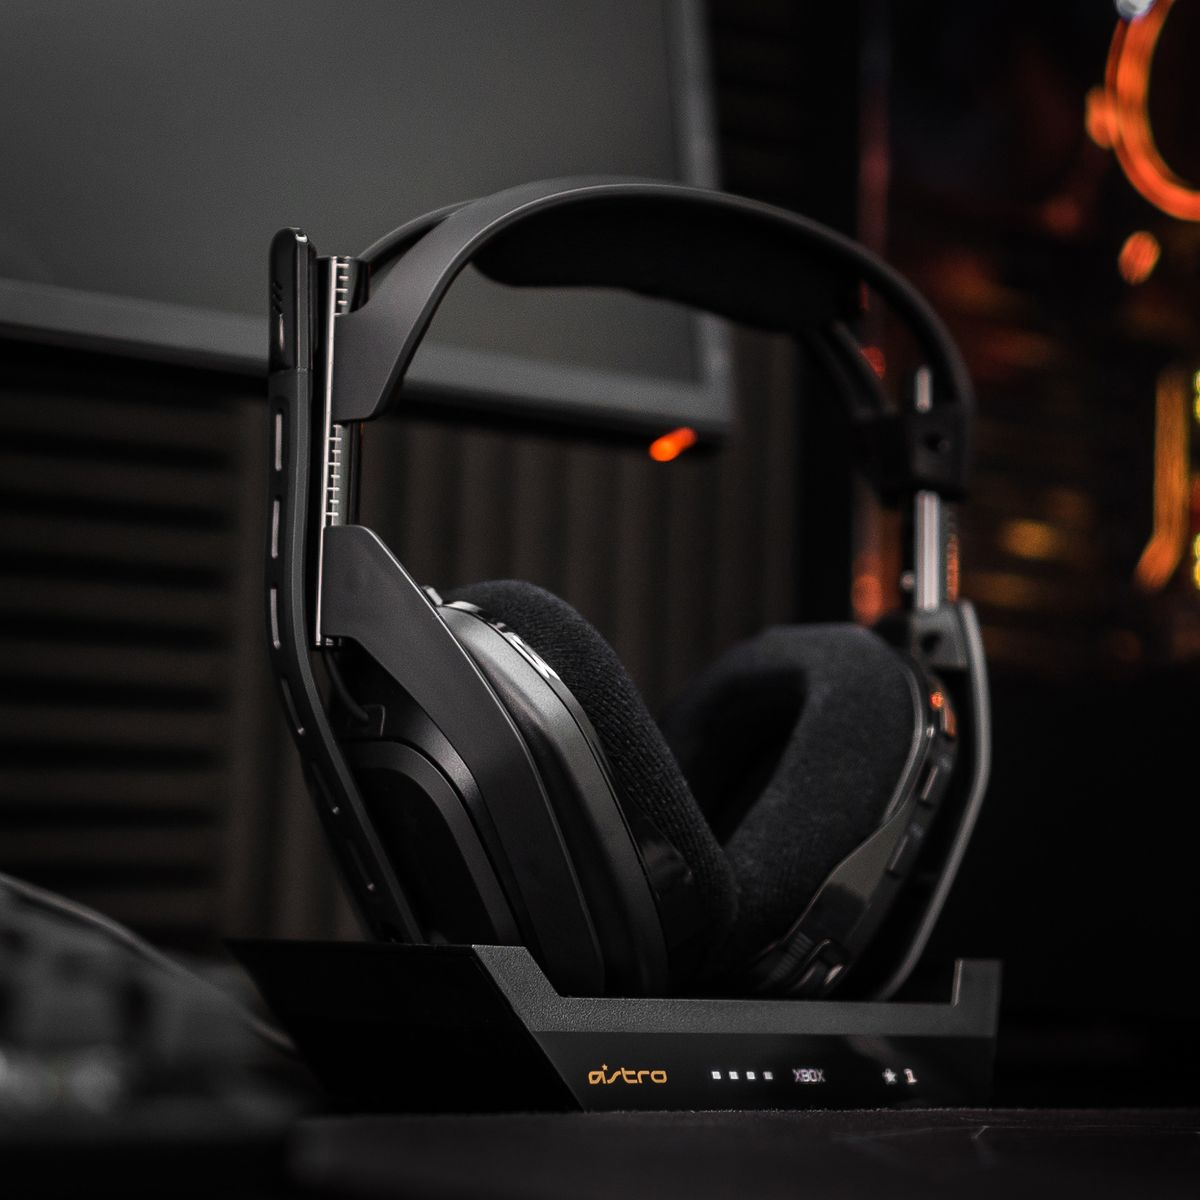 The Astro A50 for the Xbox and PC is shown here in its charging cradle.